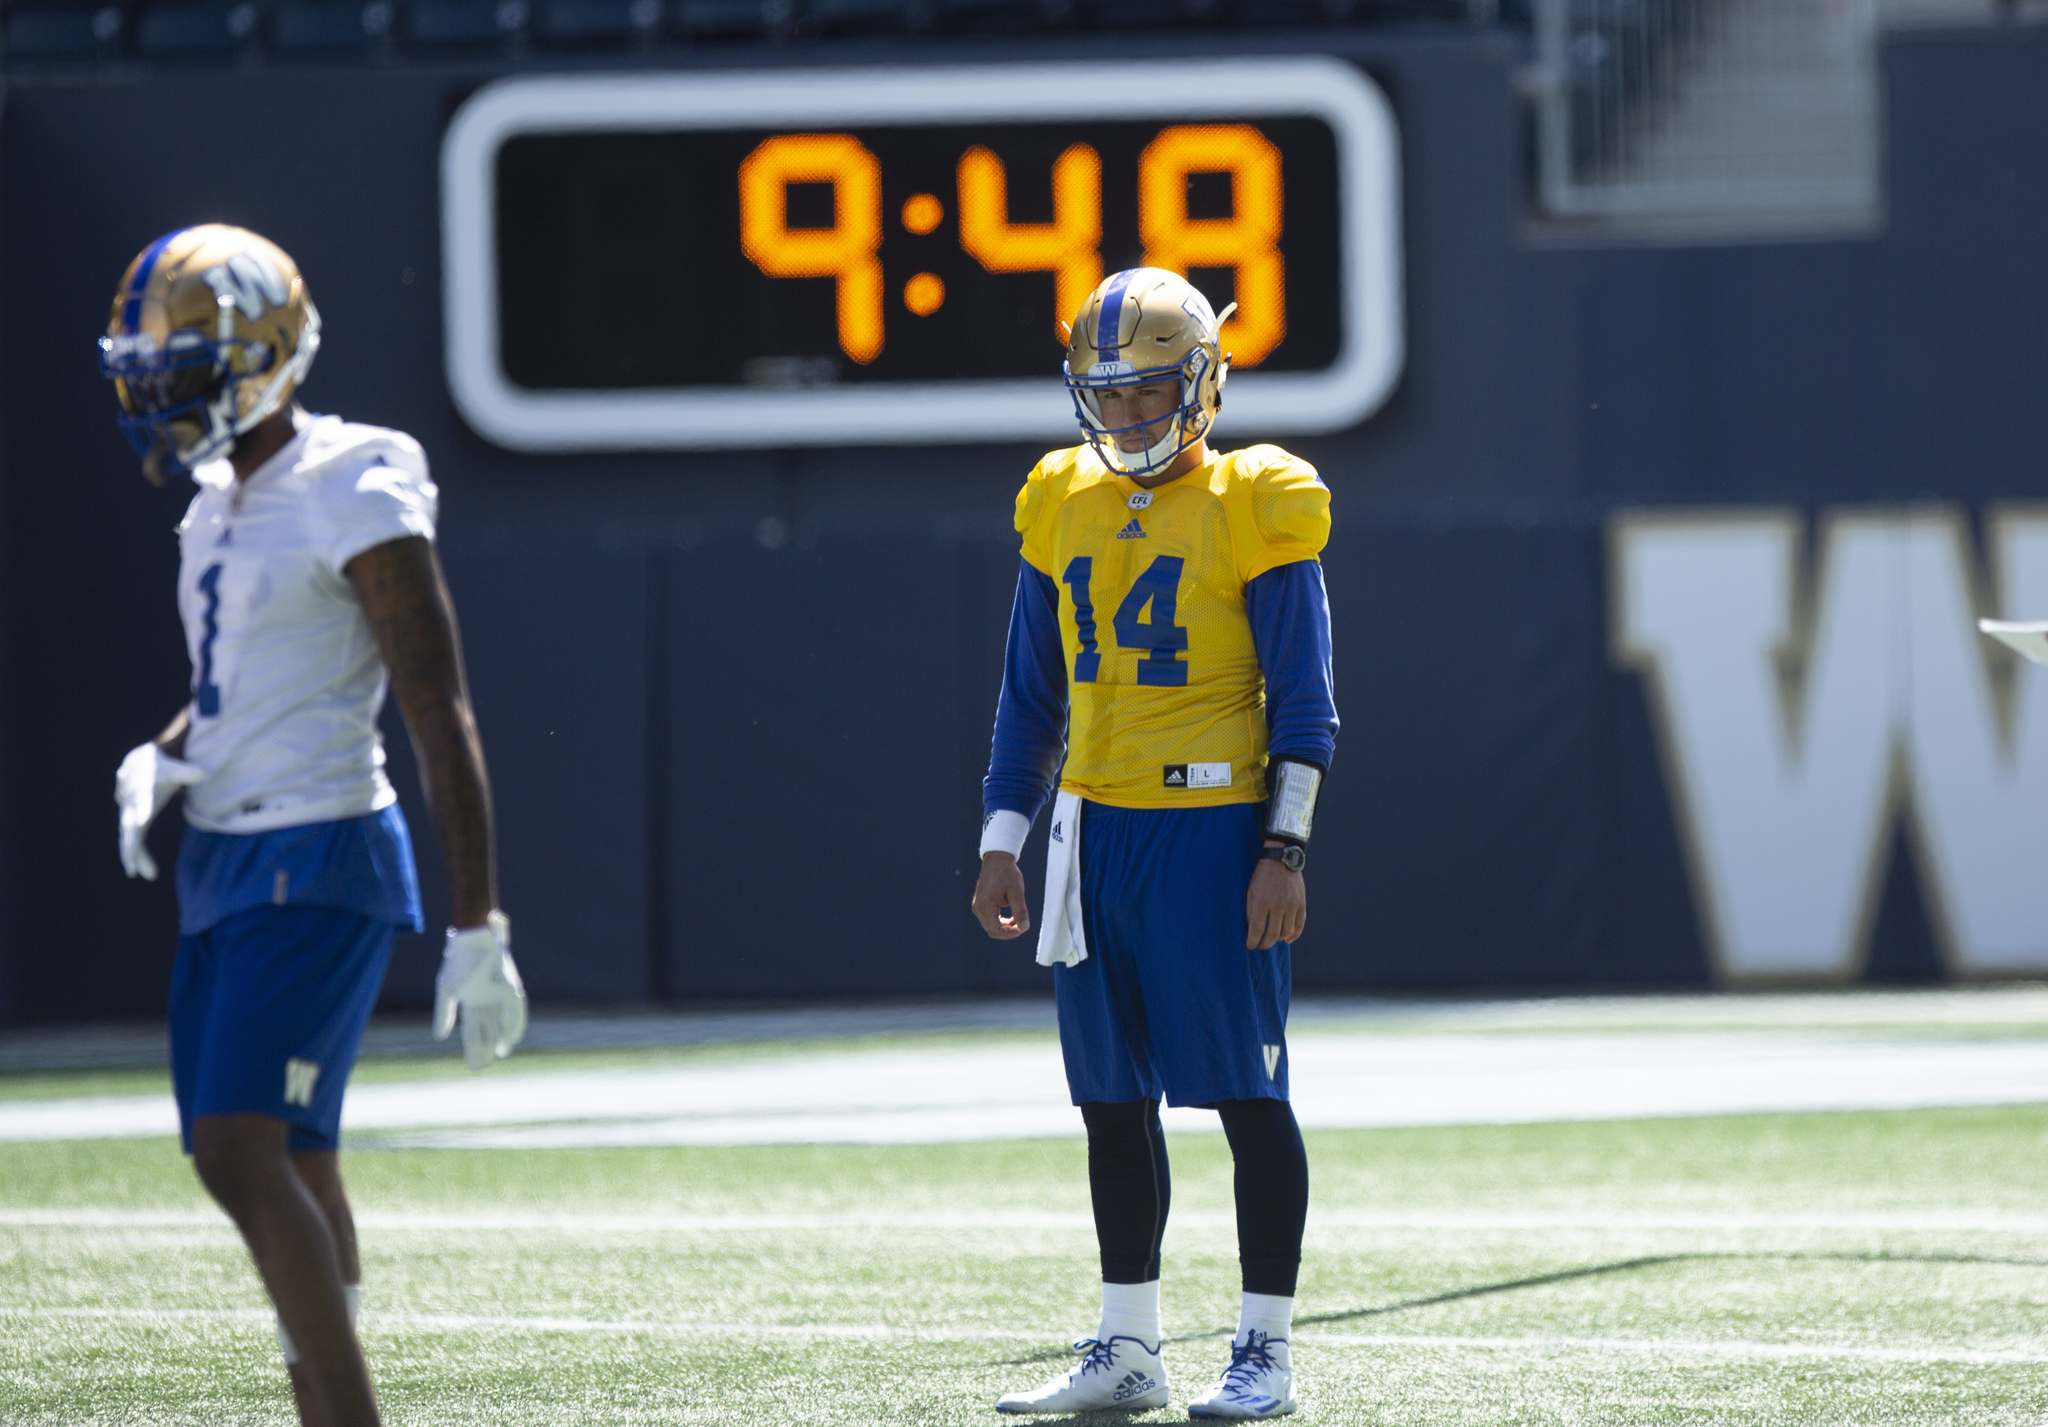 Gale was watching a rodeo in Alberta when he got the call from the Blue Bombers, who lost backup Alex Ross to lower-body injury during Thursday's 33-30 loss to Edmonton. (ANDREW RYAN / WINNIPEG FREE PRESS)</p></p>